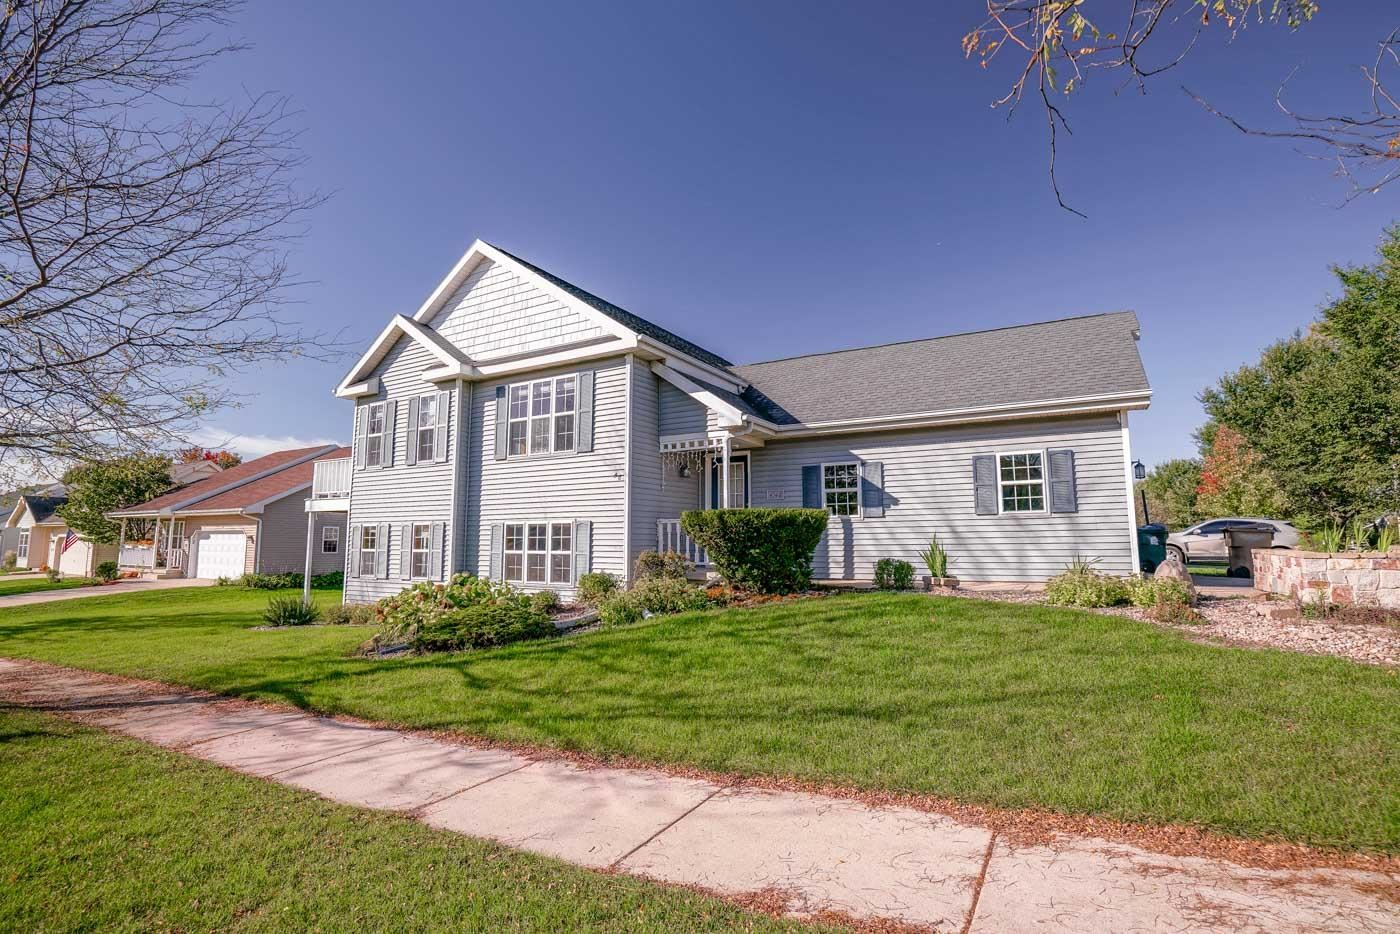 4146 Carberry St, Madison, WI 53704 - #: 1922377